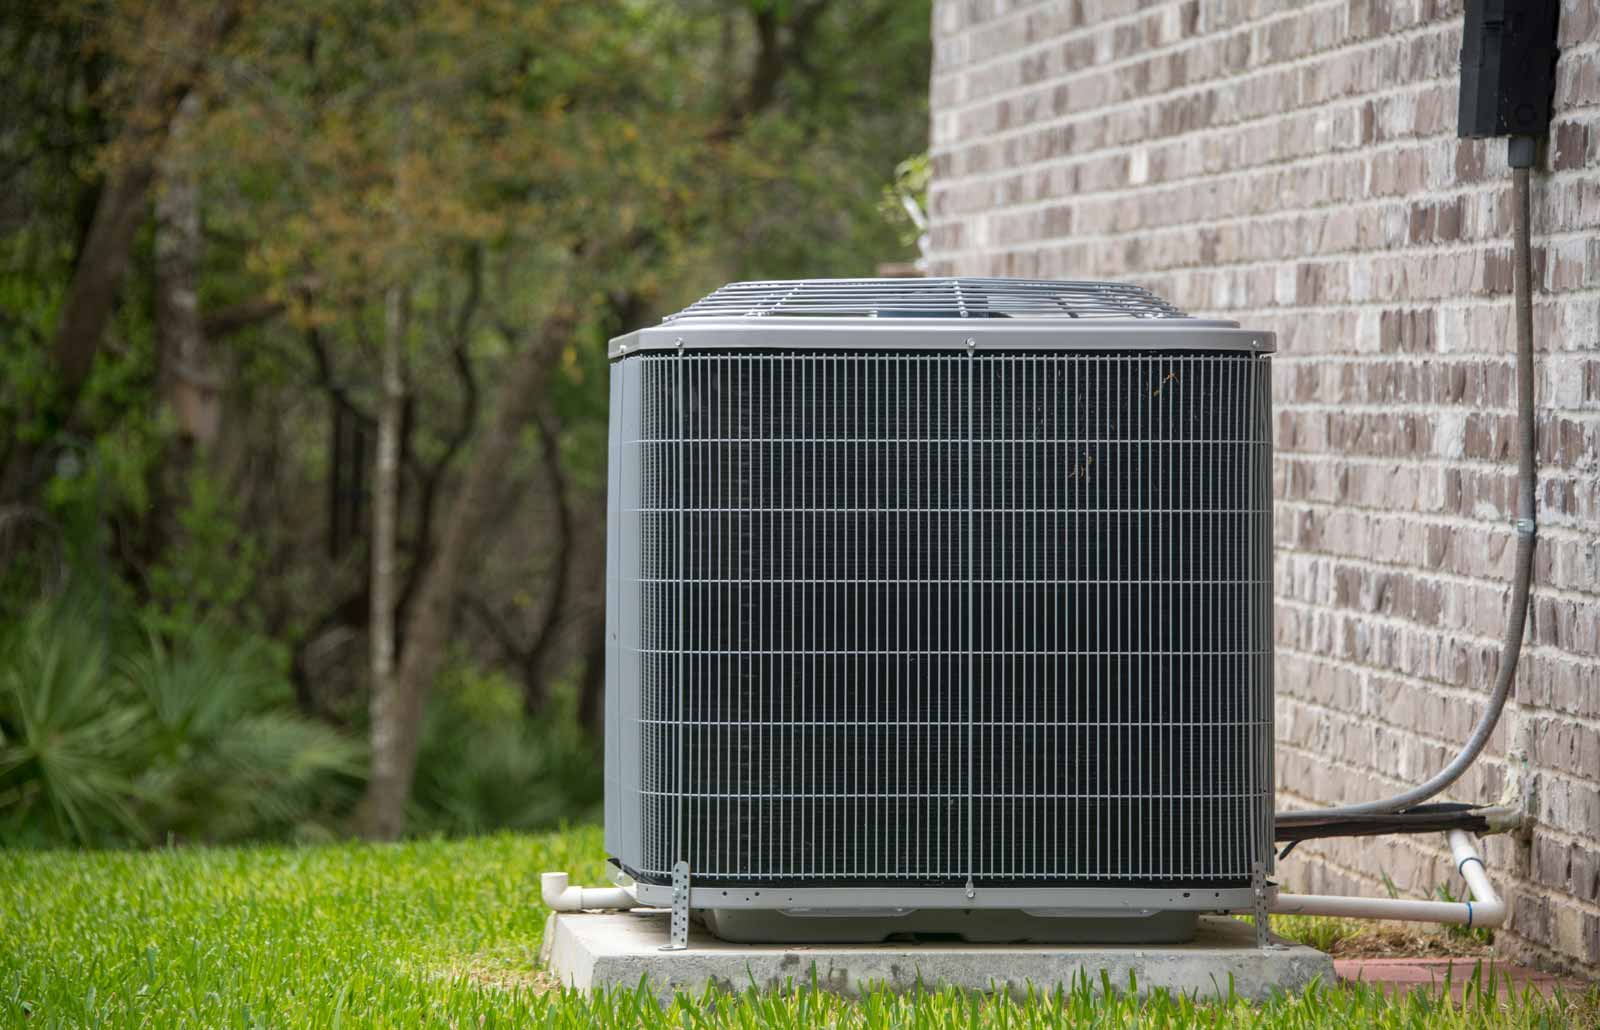 Whole Home Air Conditioning Unit